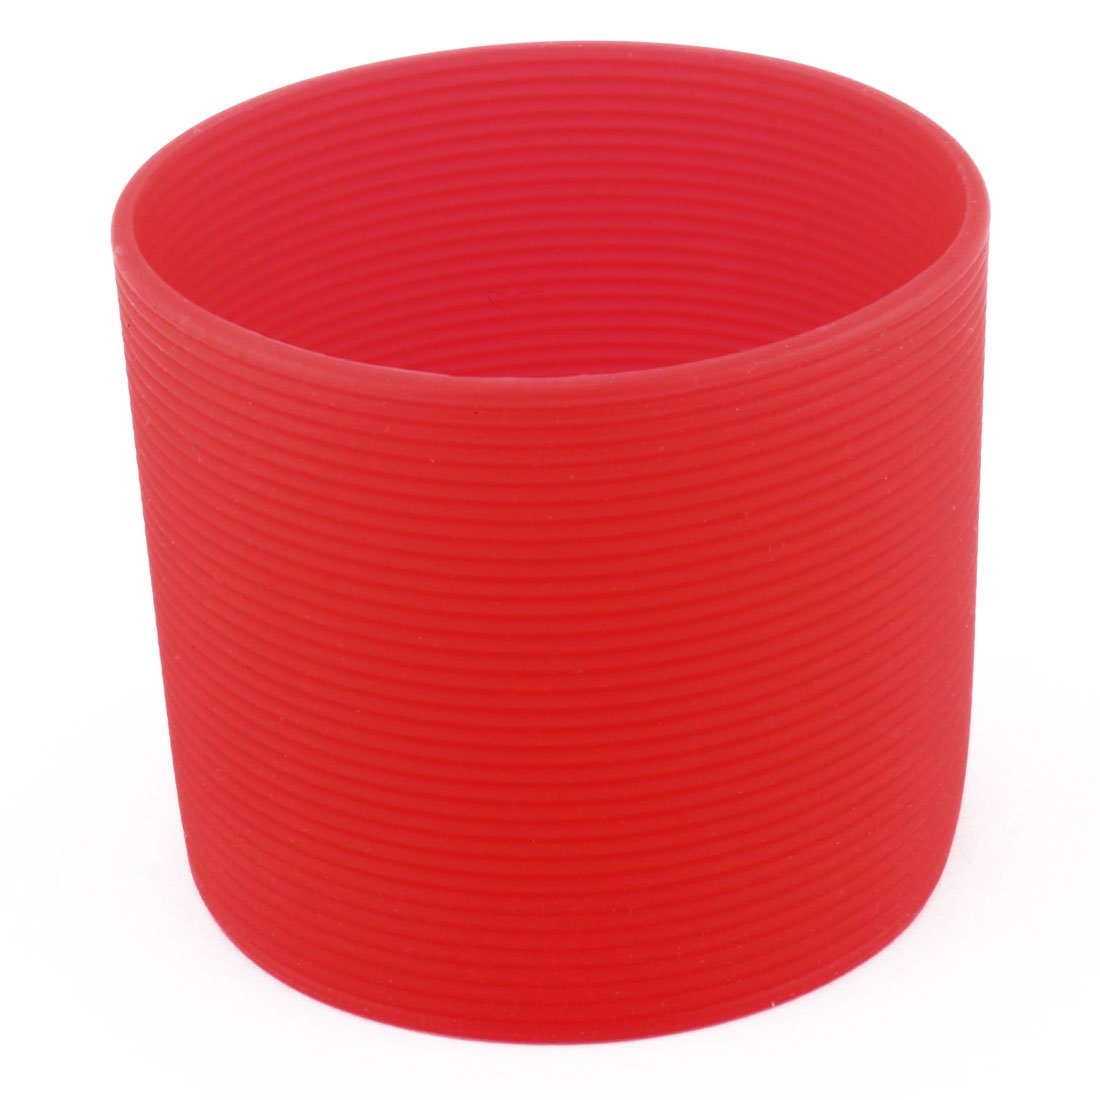 uxcell Silicone Household Reusable Heat Resistant Nonslip Glass Bottle Mug Cup Sleeve 6cm Dia Blue a17022400ux0134